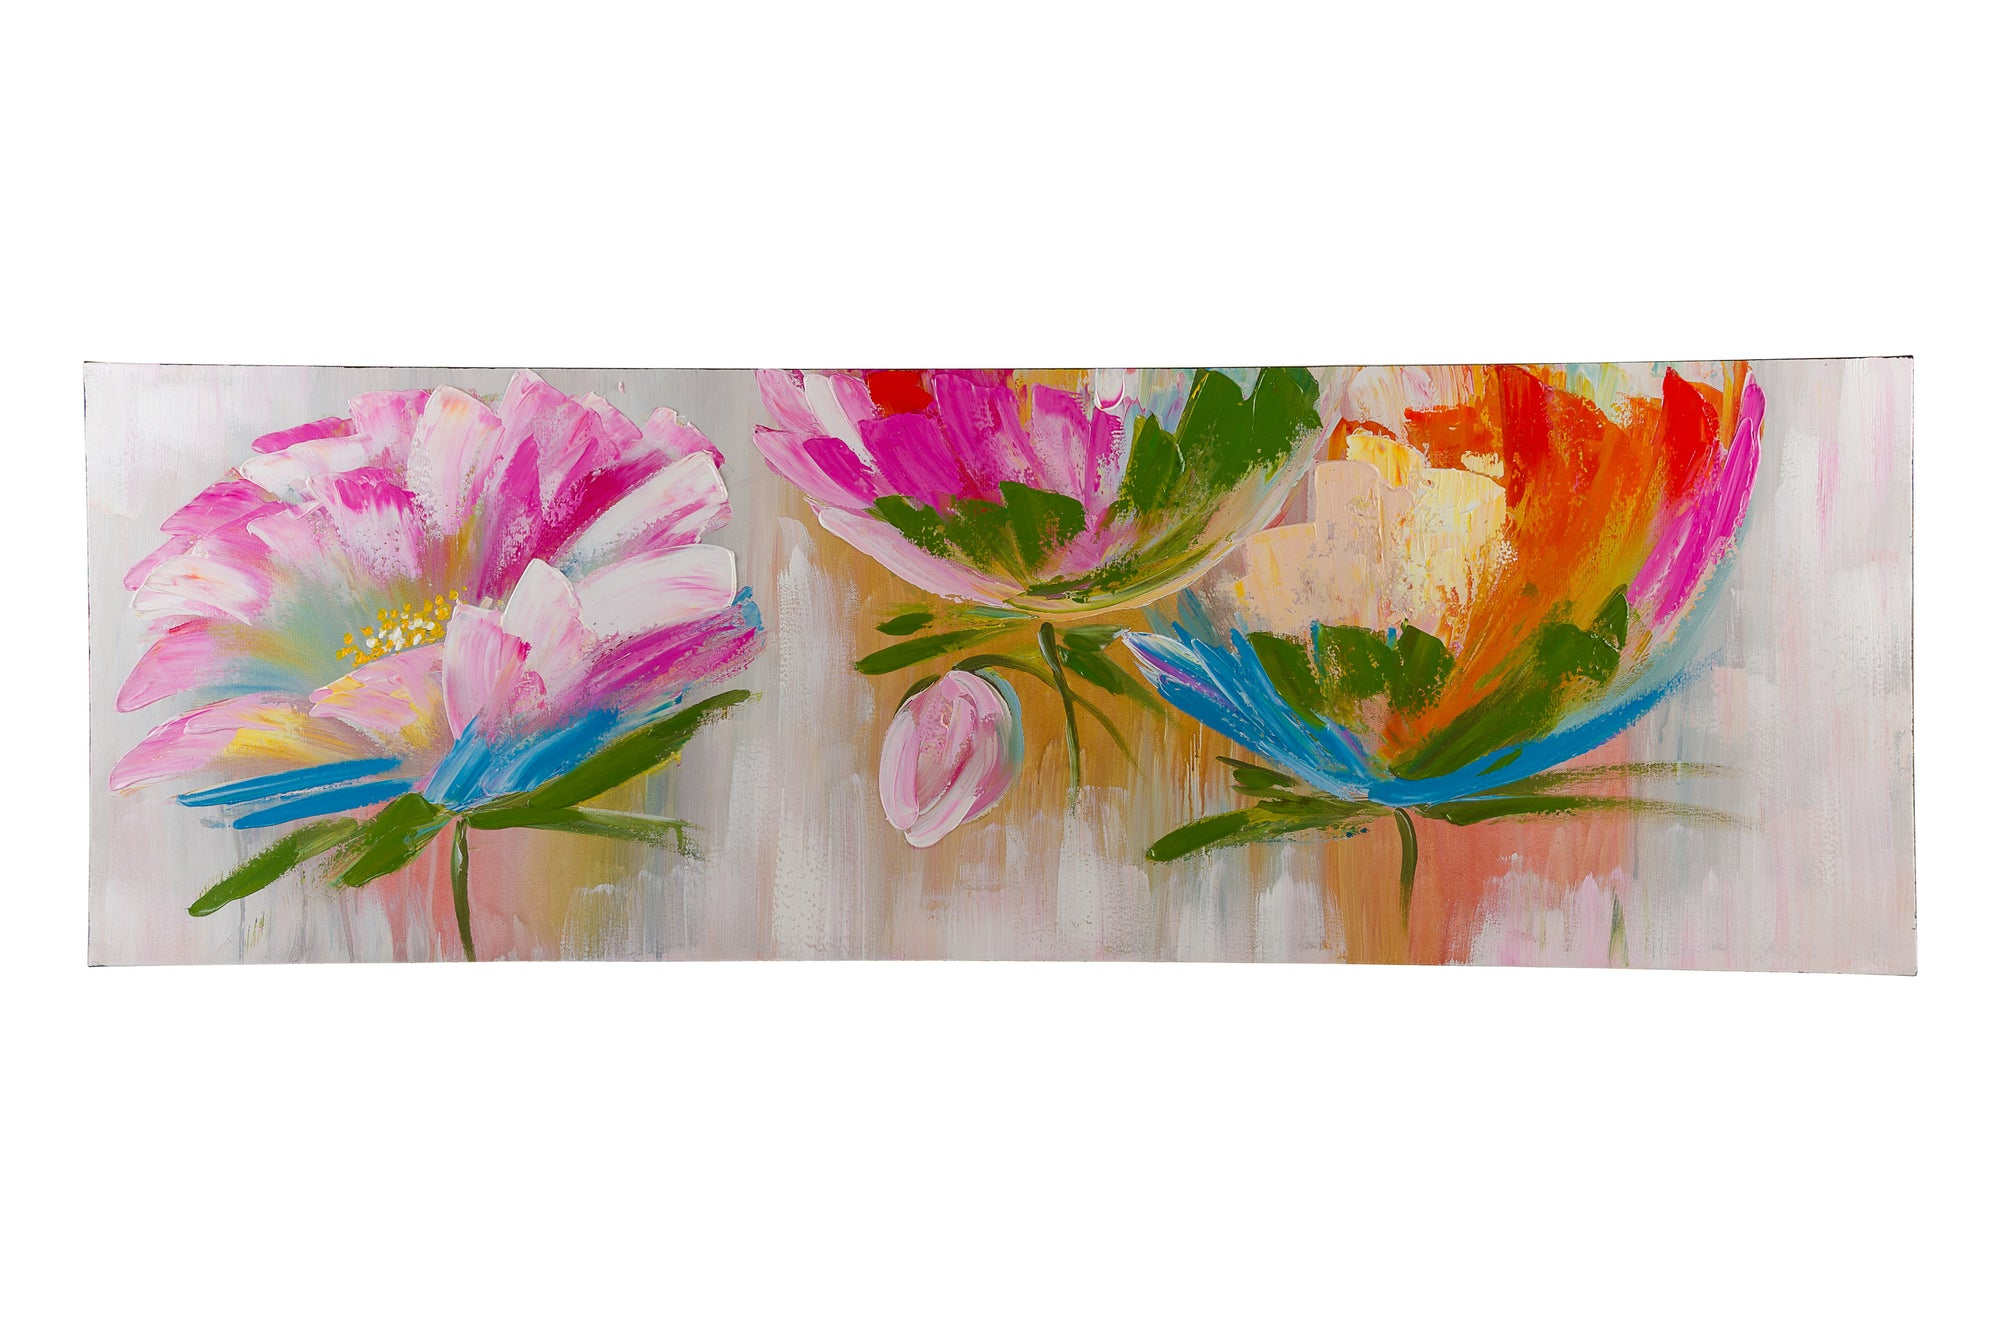 exotic floral pink hand painted wall art on canvas - Fervor + Hue